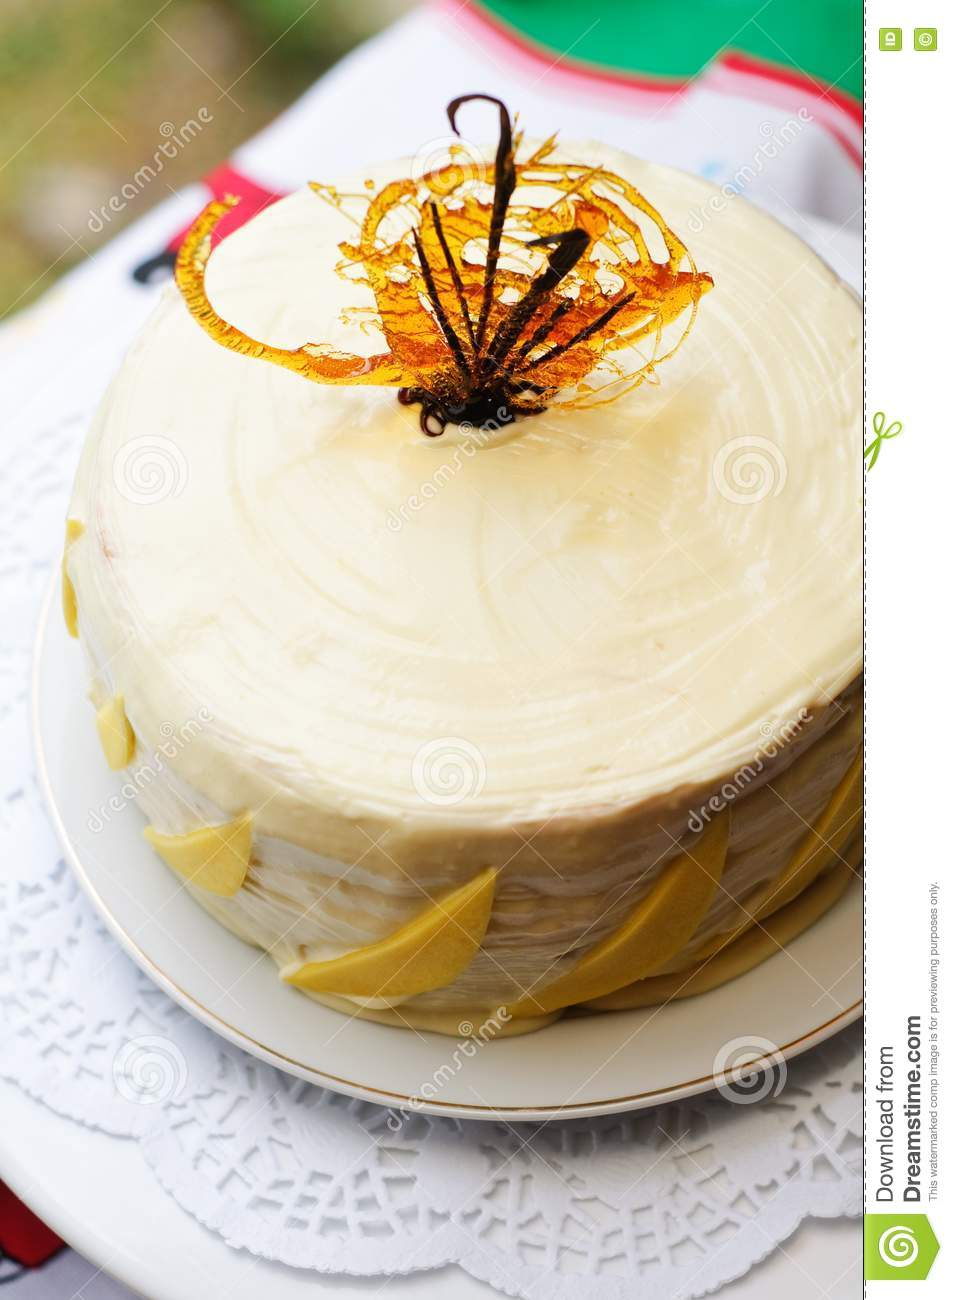 How To Make Mango Feather Cake